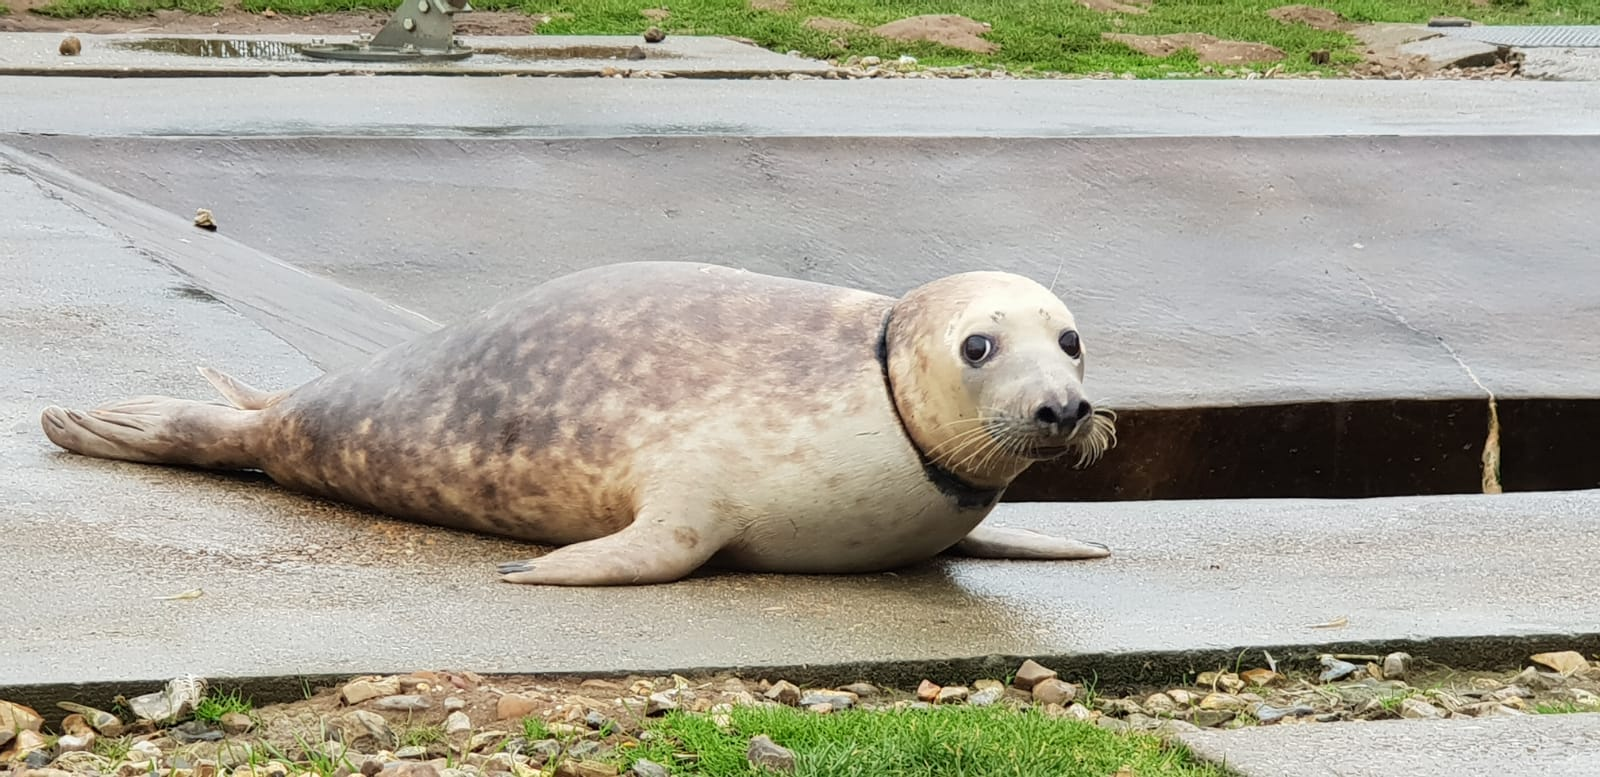 Another Seal Called Pinkafo Who Came Into Rspca Care In December After She Was Found With A Pink Frisbee Embedded Her Neck